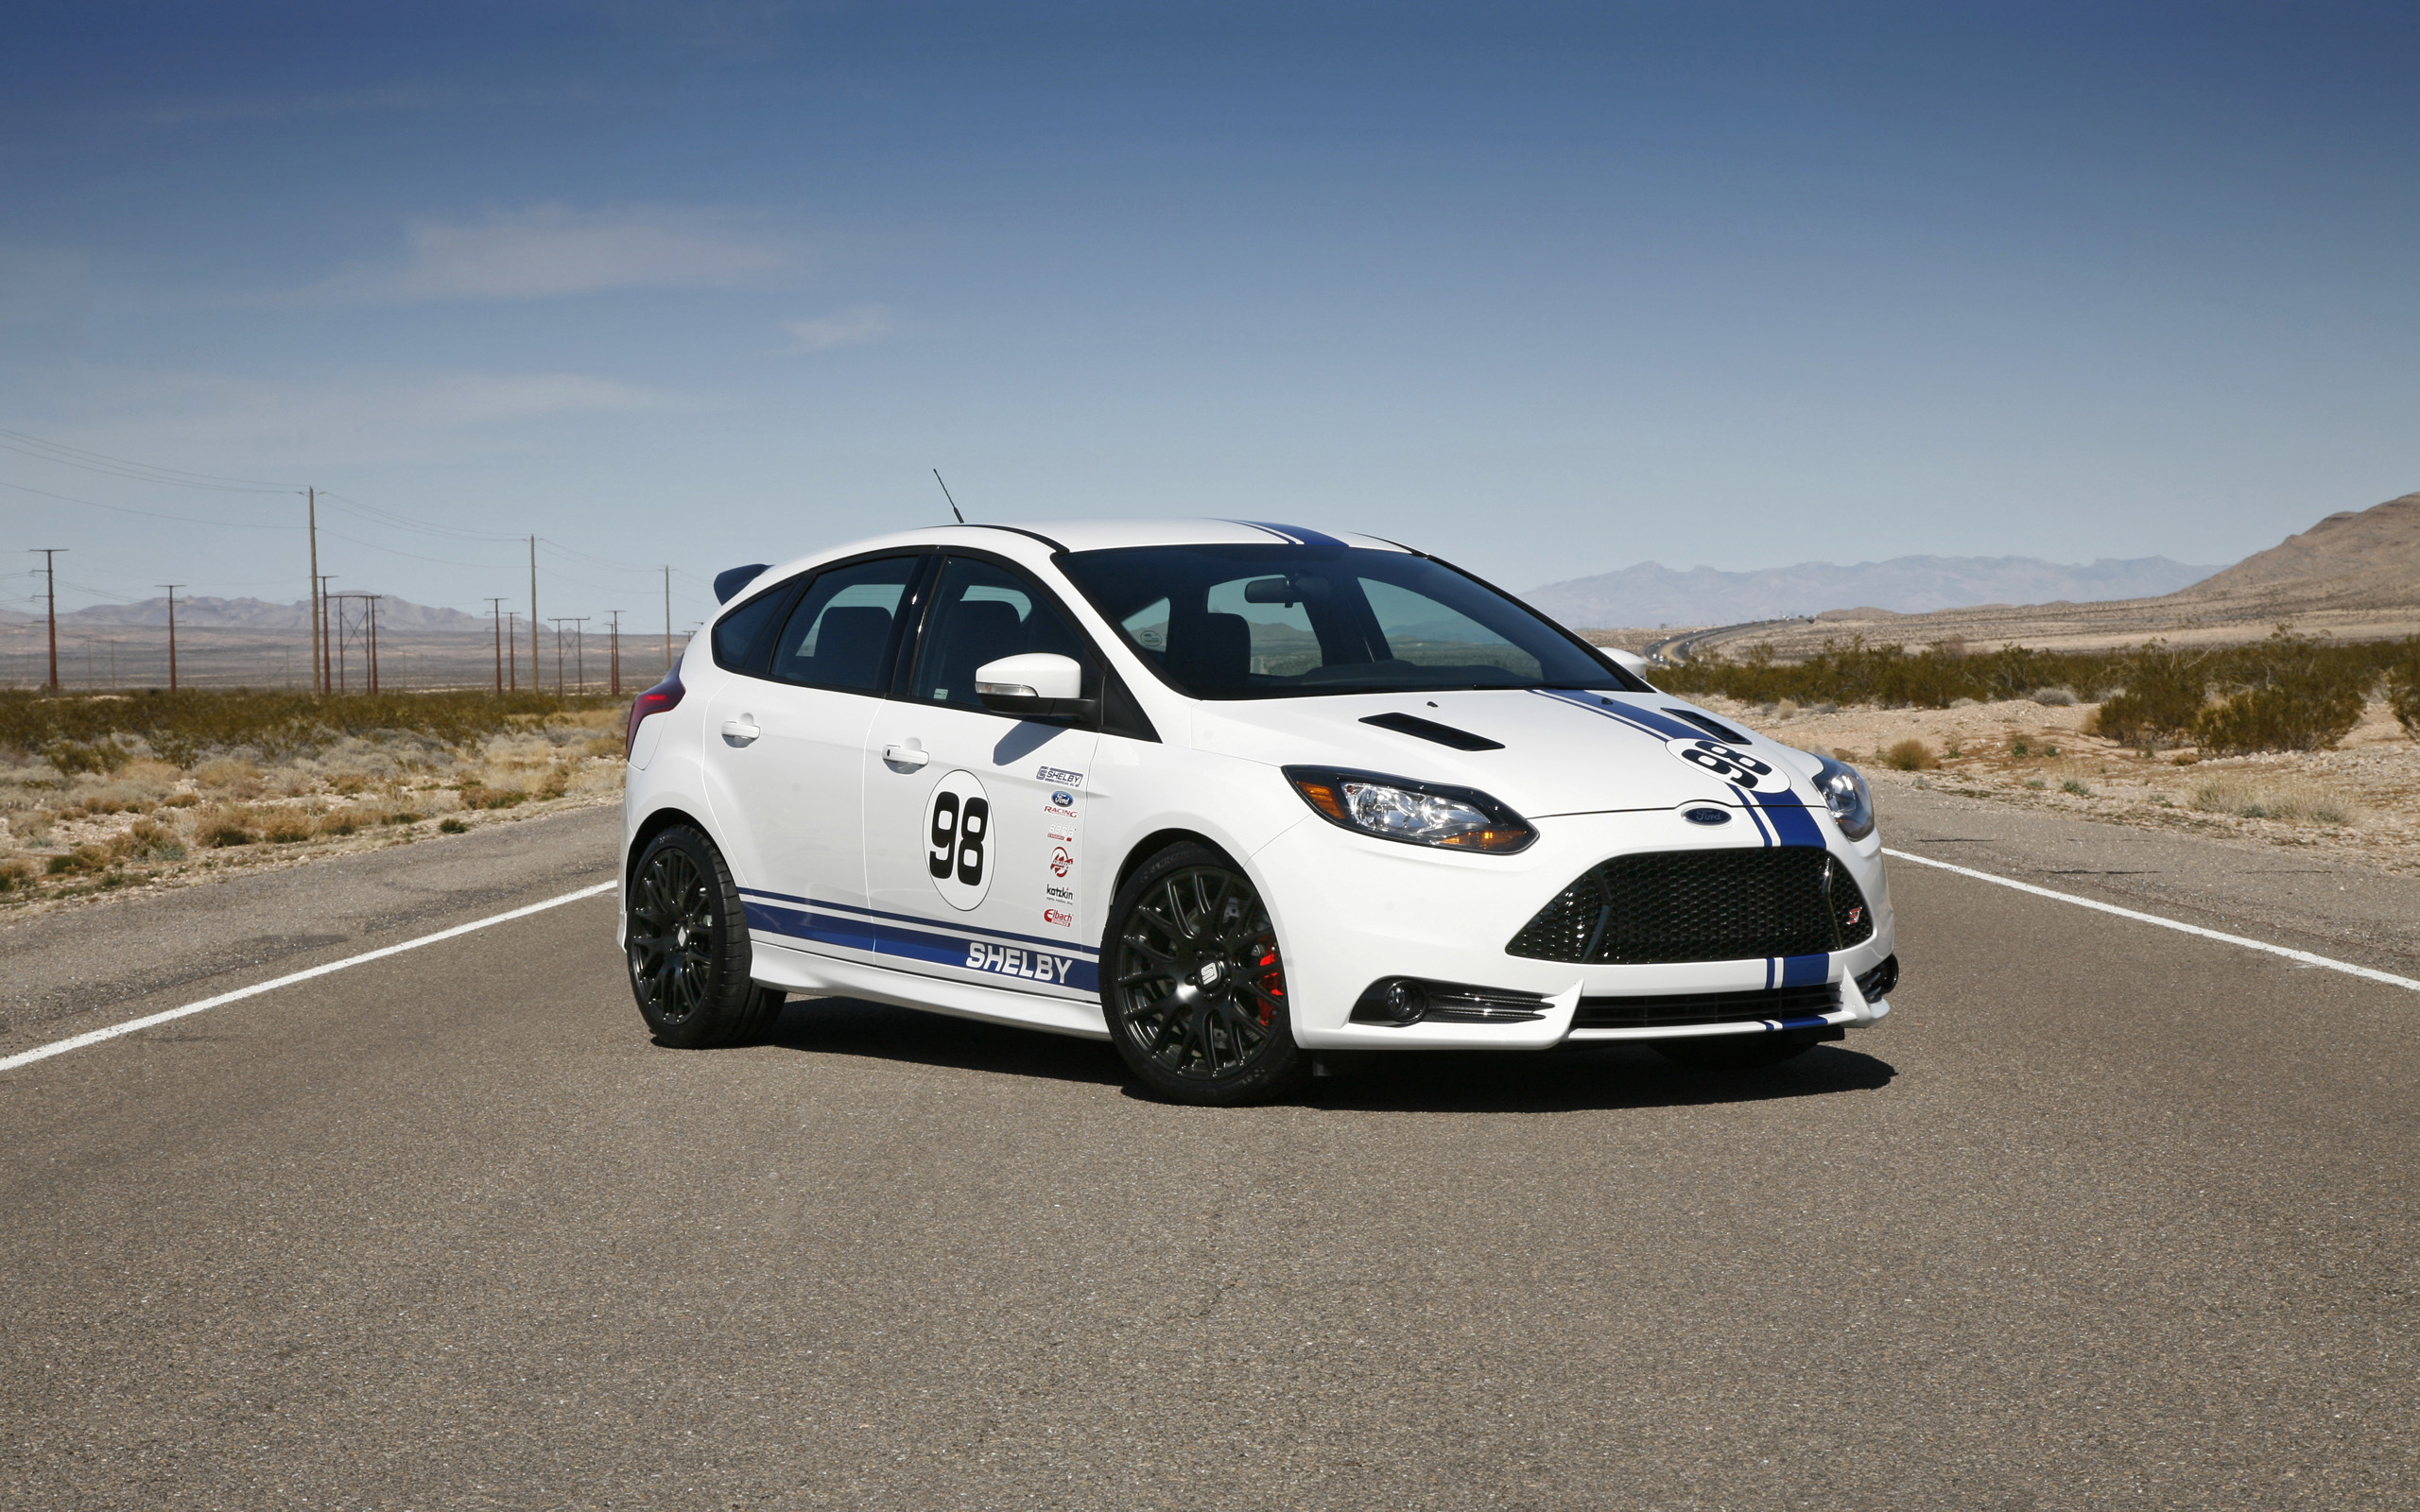 2014 Shelby Ford Focus ST   White   4   2560x1600   Wallpaper 2560x1600